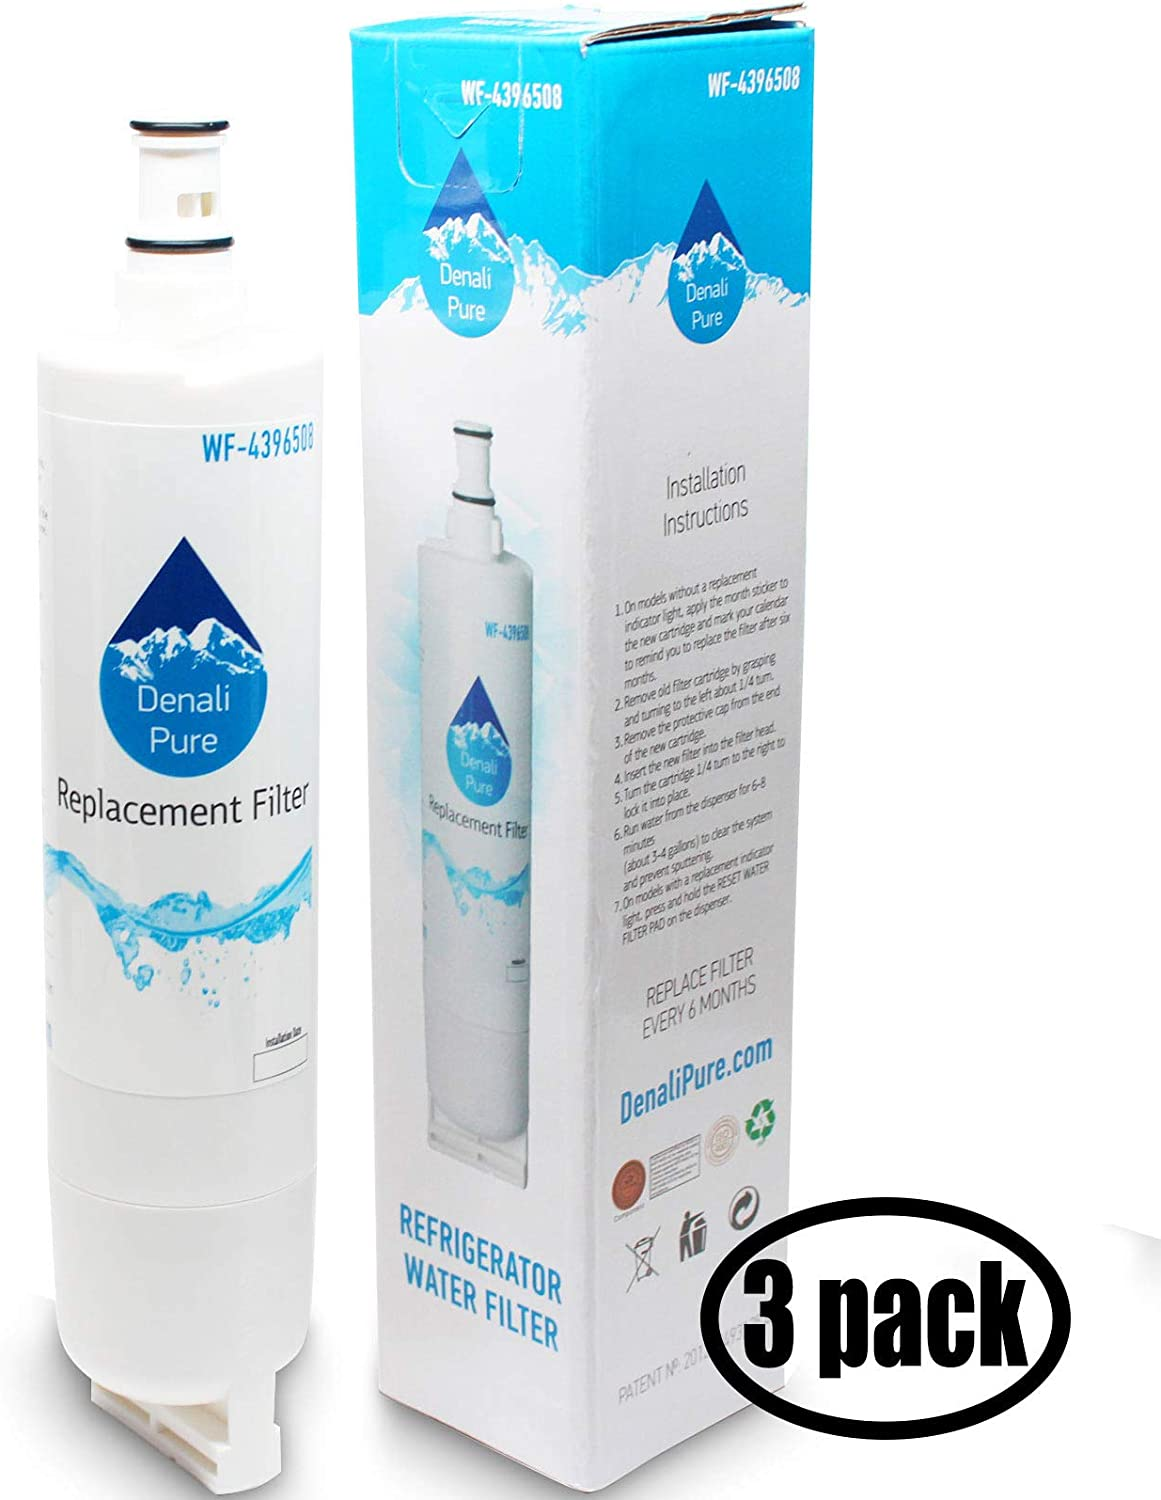 3-Pack Replacement for for Kenmore 9902 Refrigerator Water Filter - Compatible with with Kenmore 9902 Fridge Water Filter Cartridge